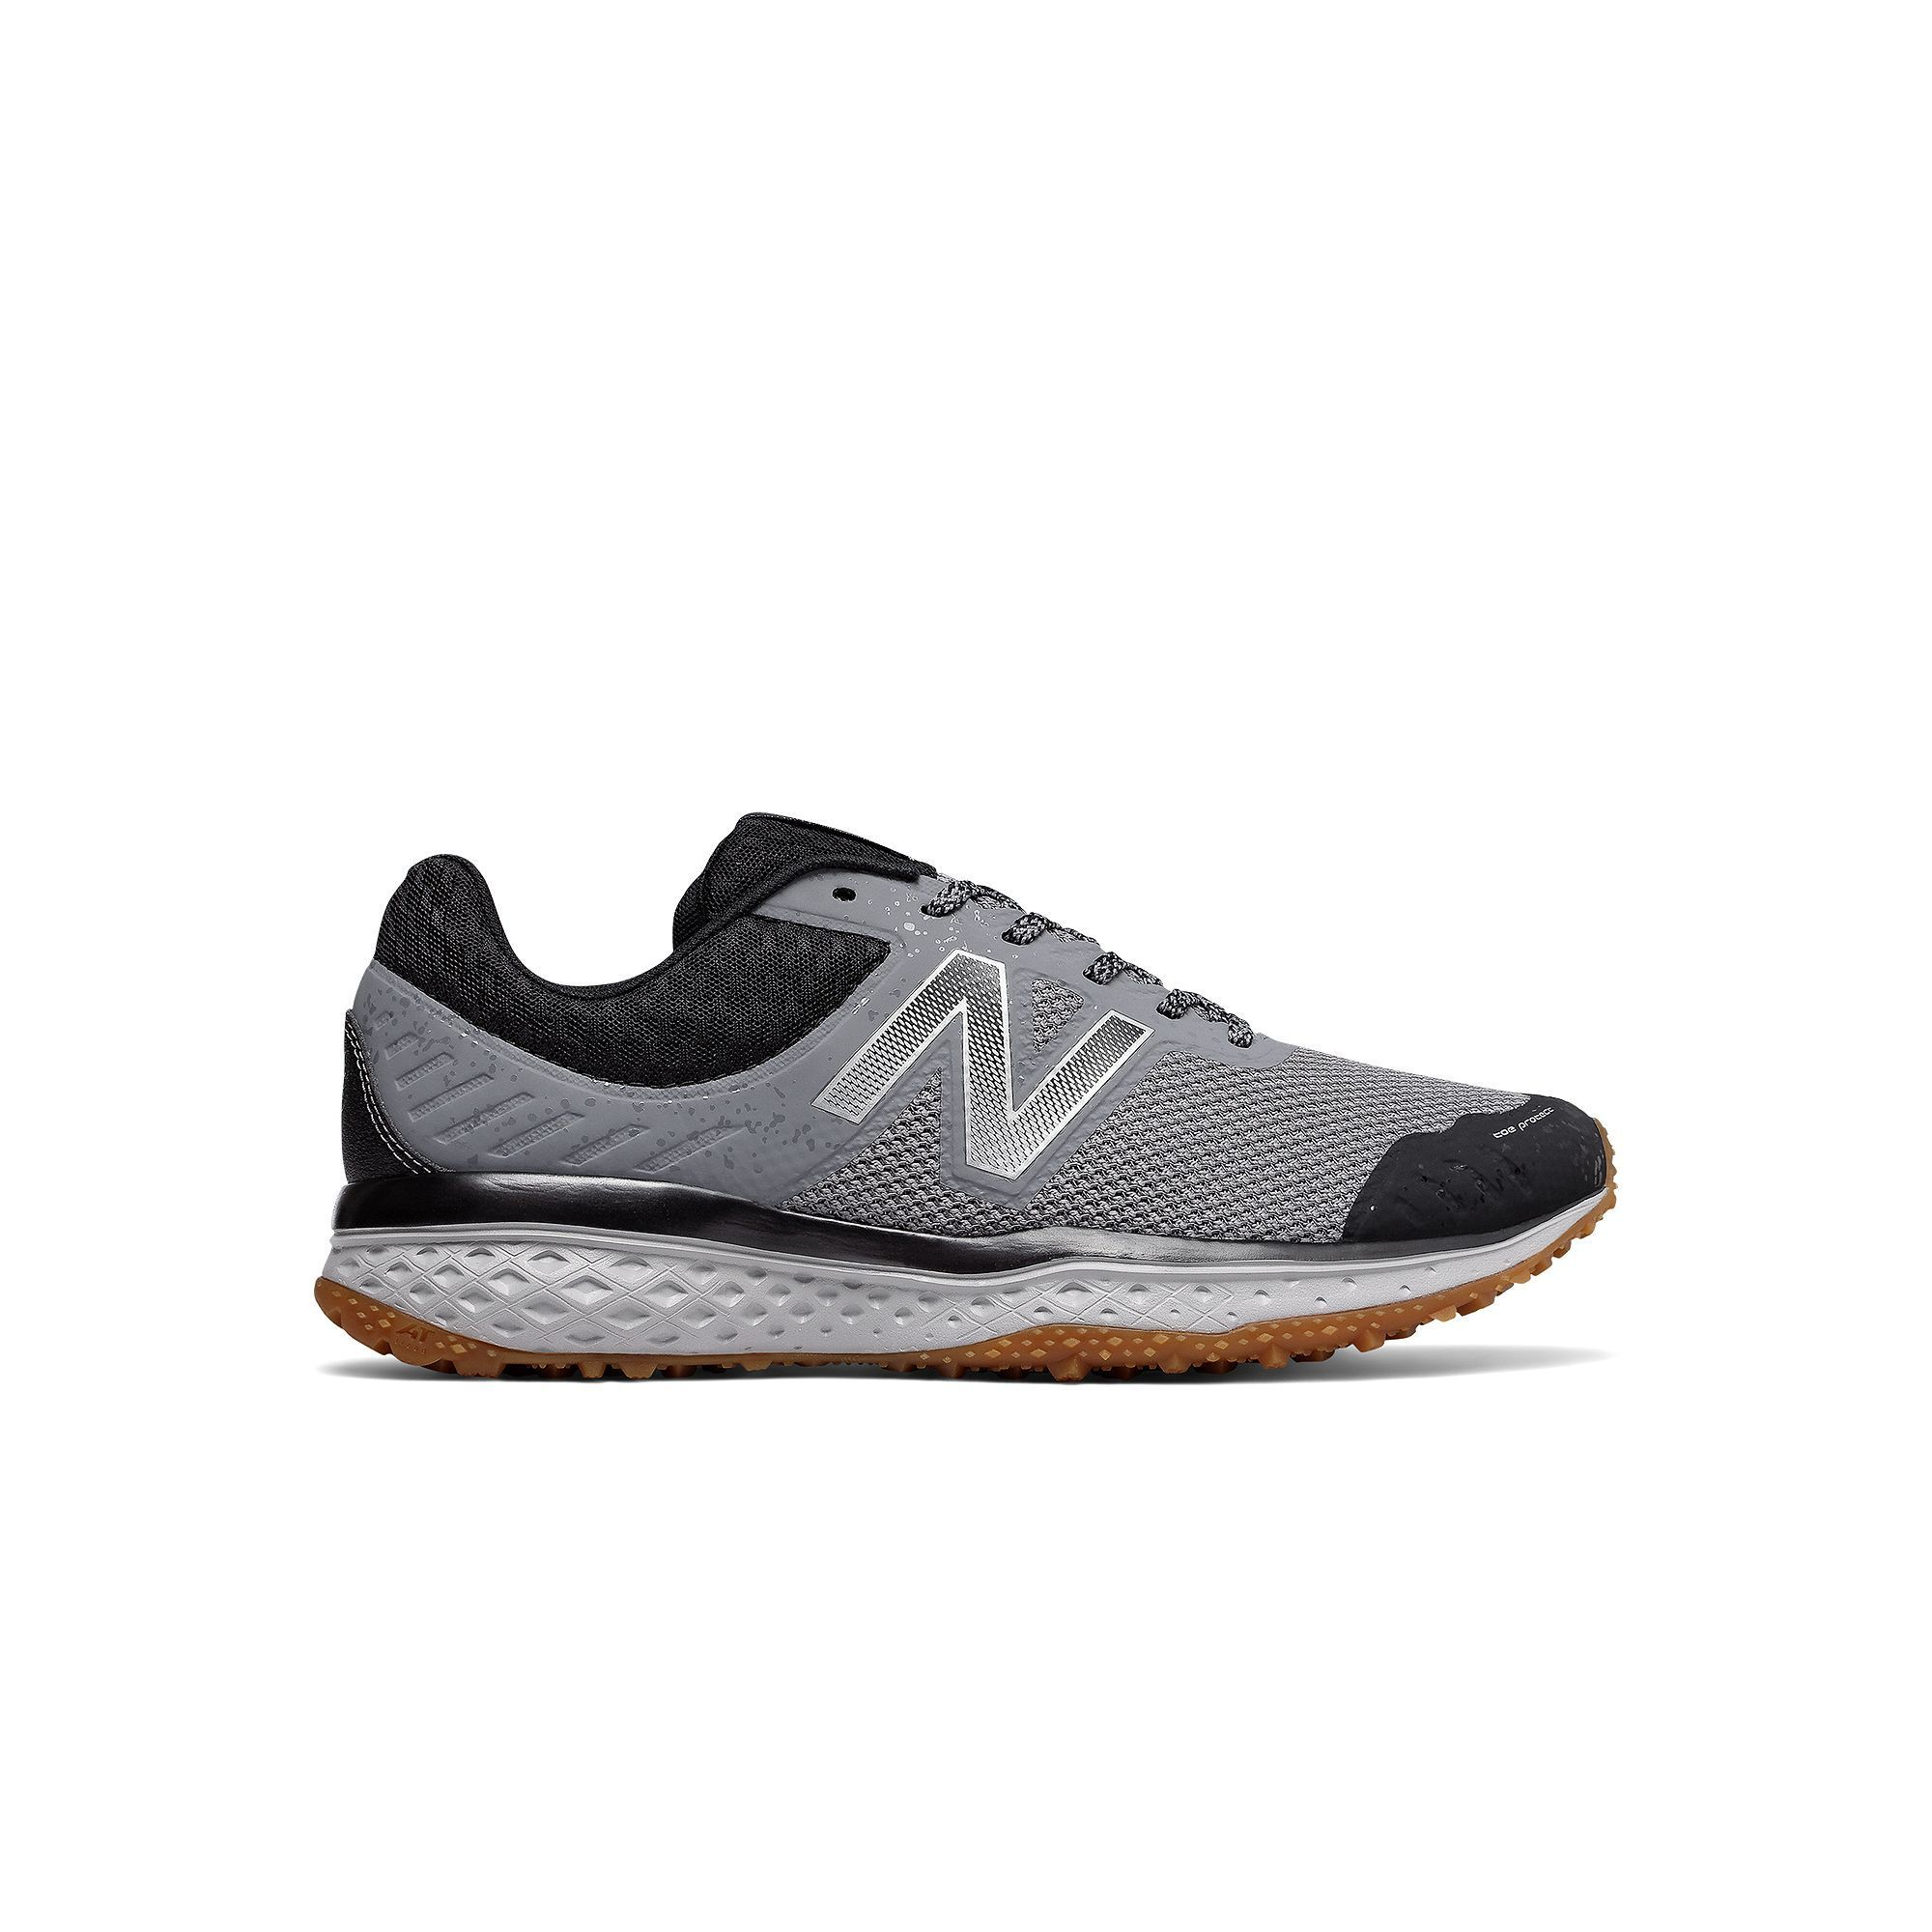 new balance 620 cross training shoe mens